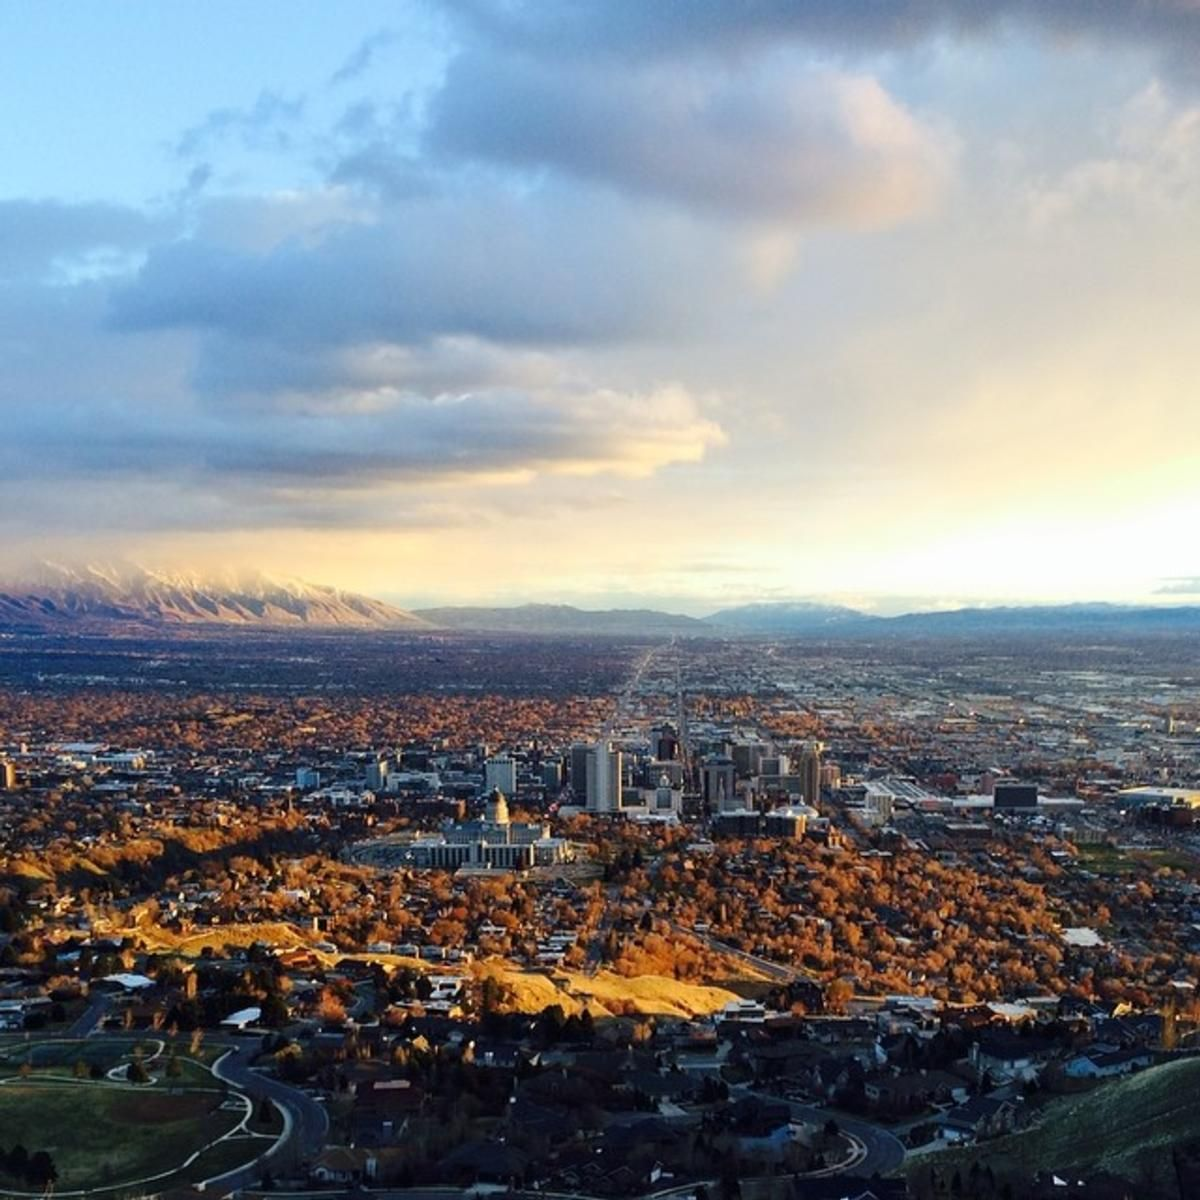 Salt Lake City Spring: A Warm Spring Weekend In Salt Lake City. #VisitSaltLake